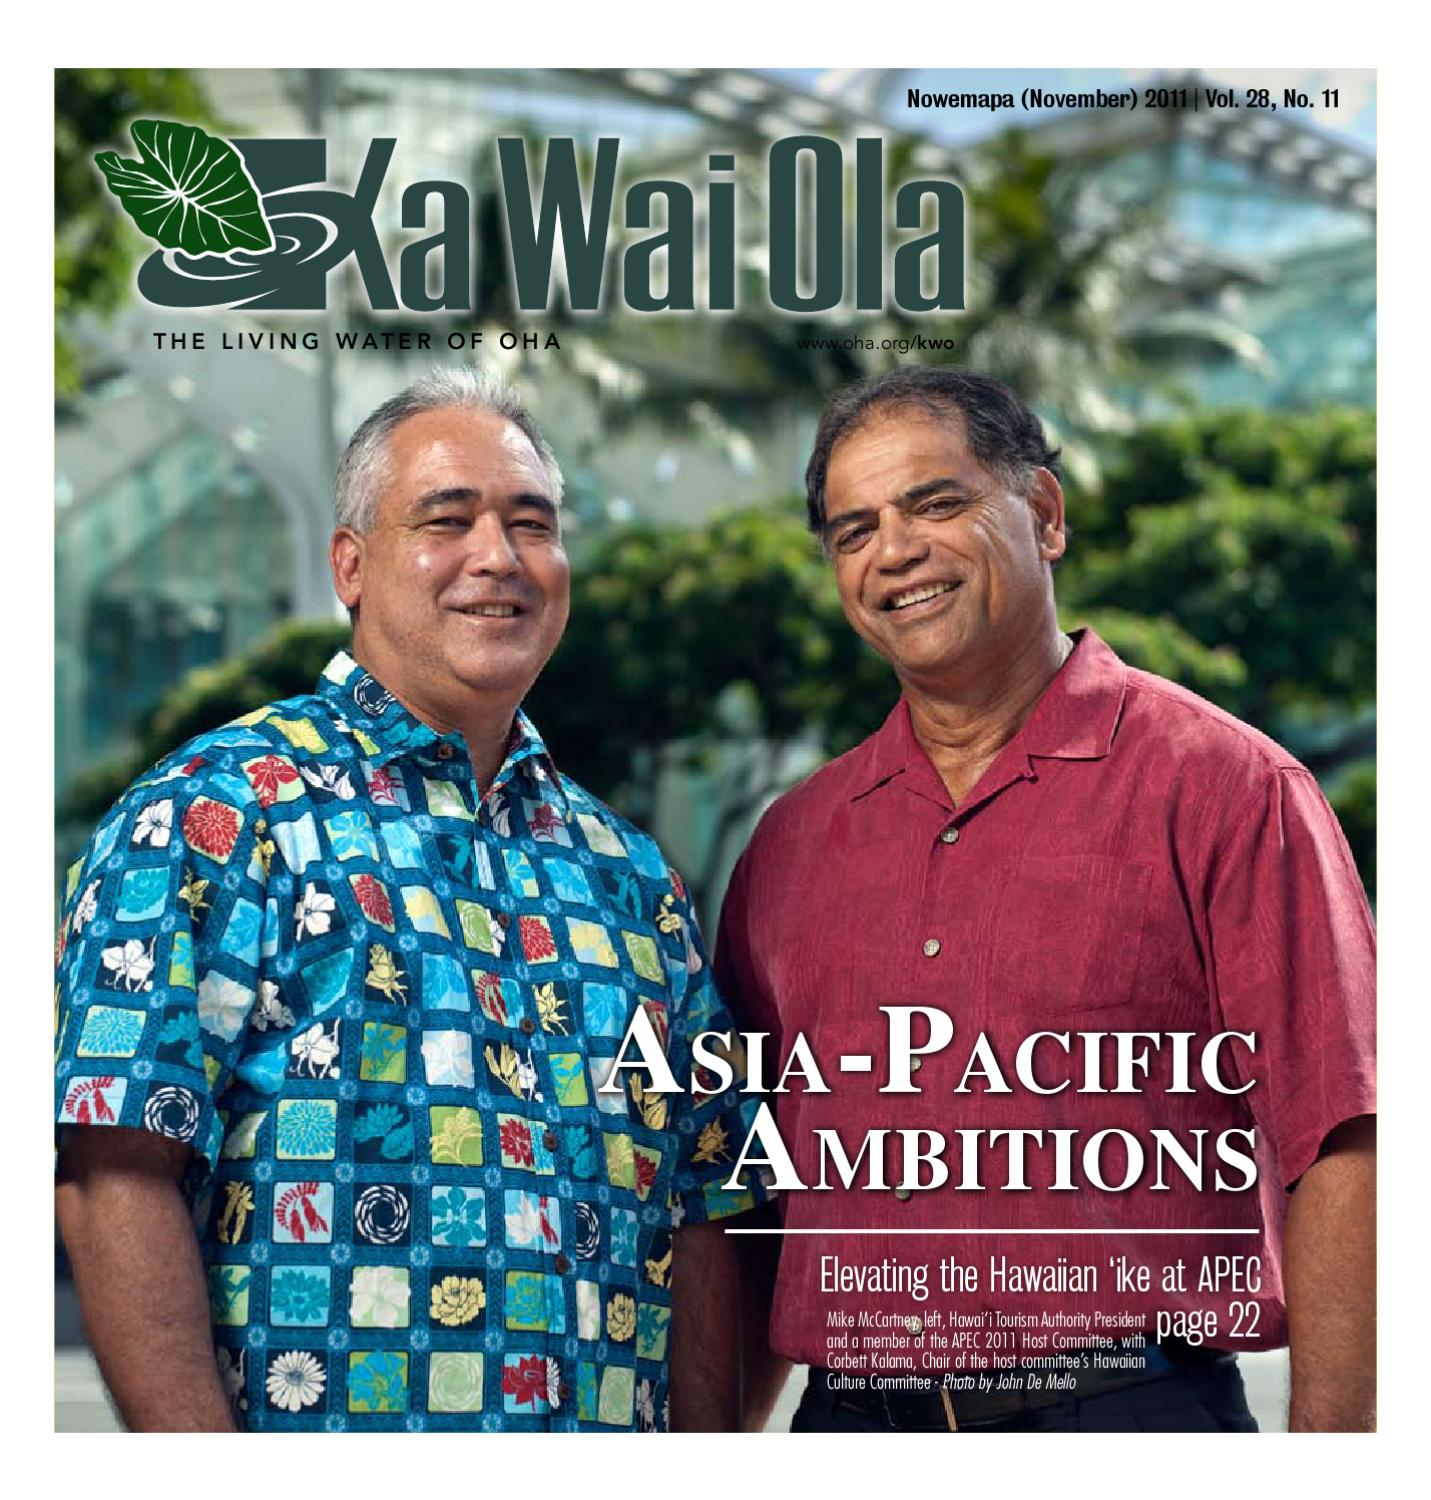 fc53c788 KWO - November 2011 | Vol. 28, No. 11 by Ka Wai Ola o OHA - The Living  Water - issuu